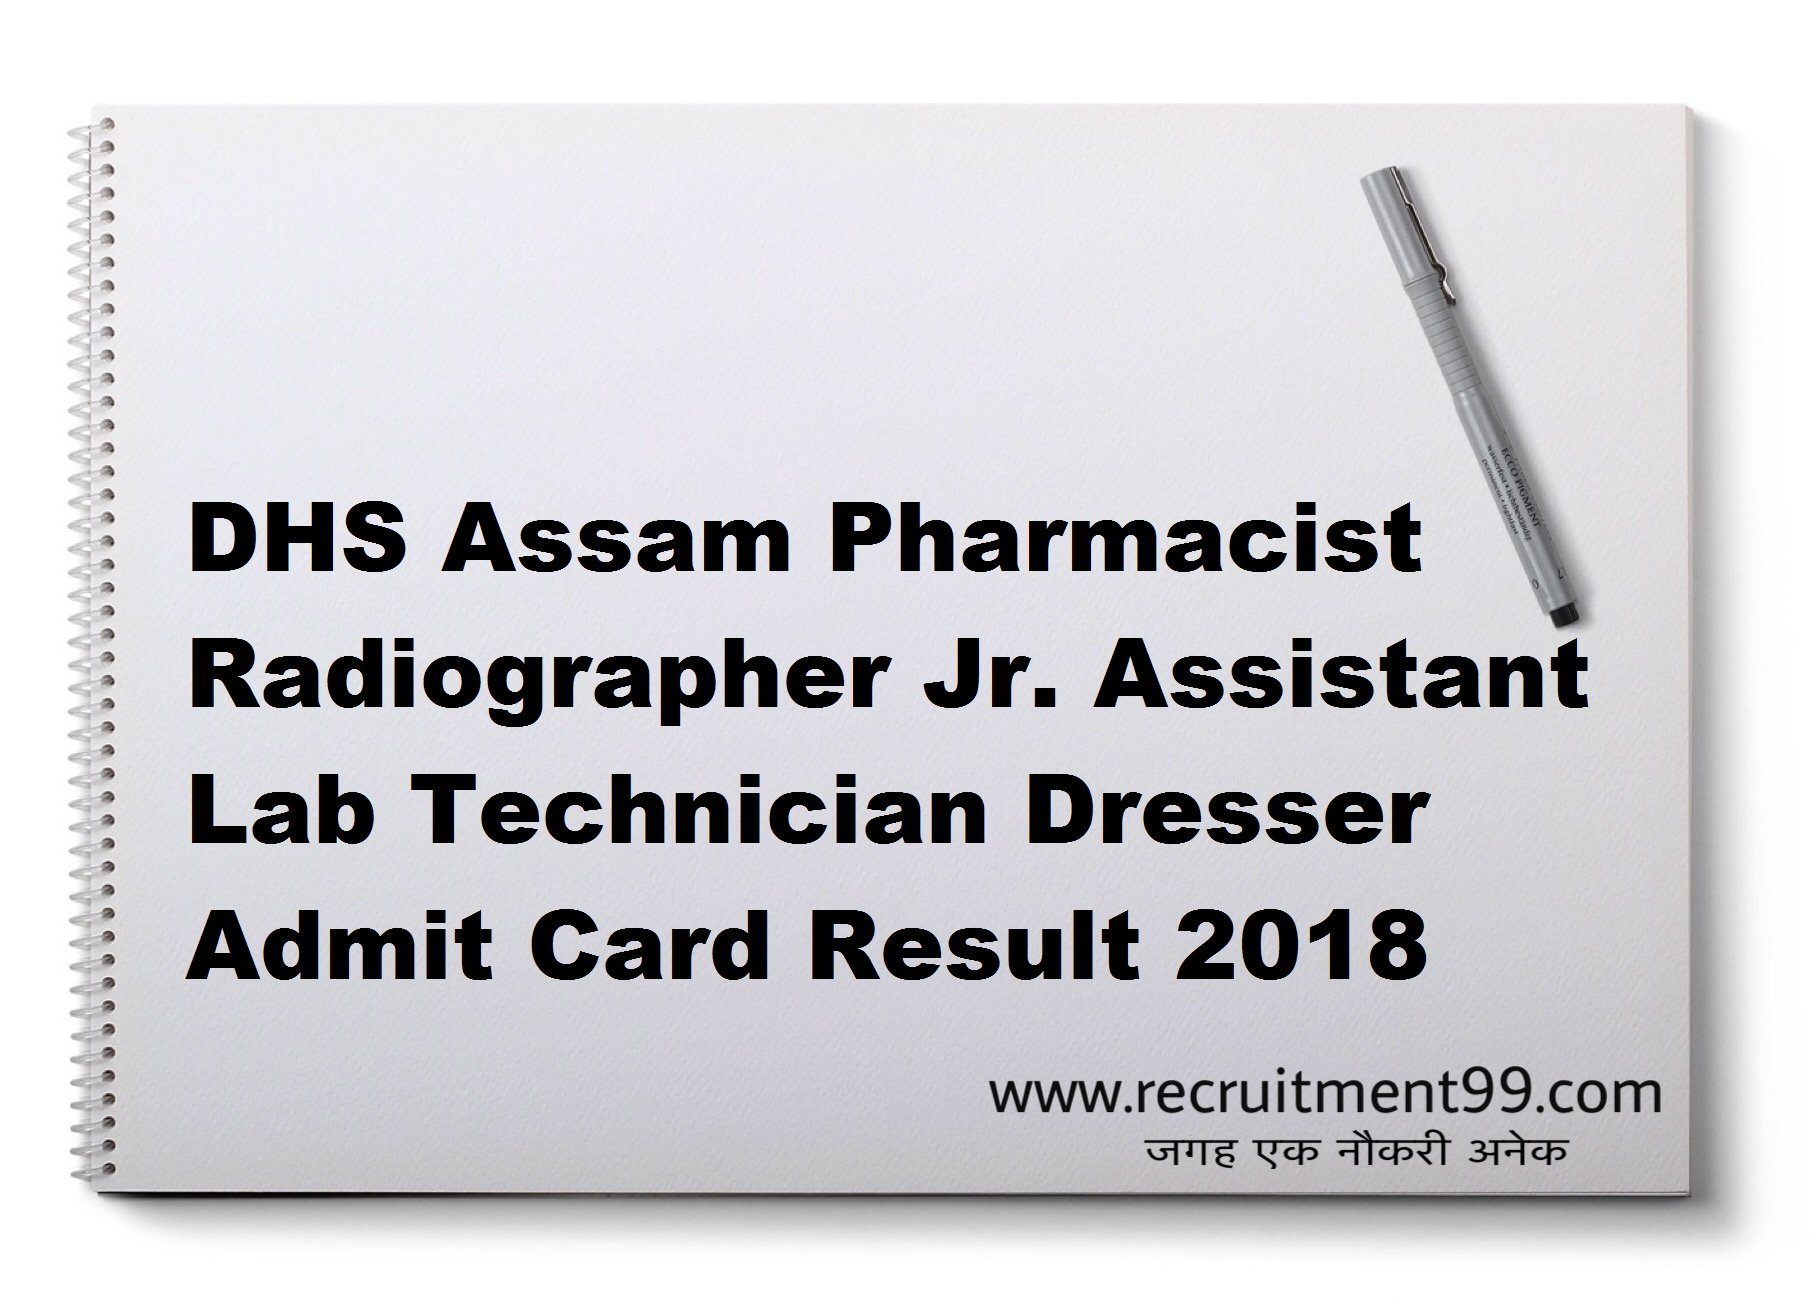 NHM Assam Staff Nurse Clinical Instructor Audiometric Assistant JE Recruitment Admit Card Result 2018